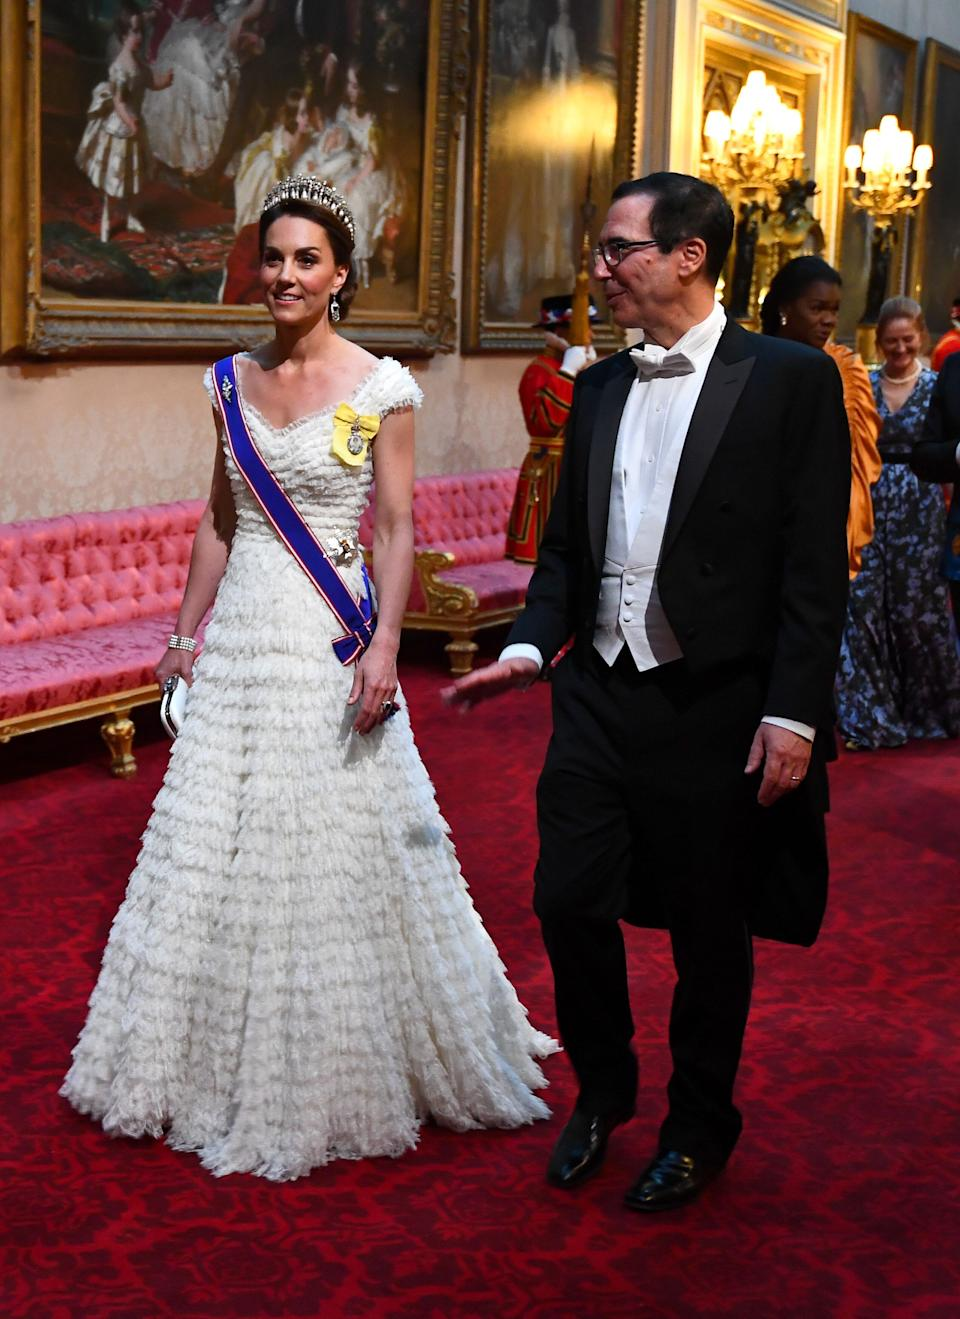 The duchess and U.S. Treasury Secretary Steven Mnuchin at the East Gallery for a state banquet at Buckingham Palace on June 3.